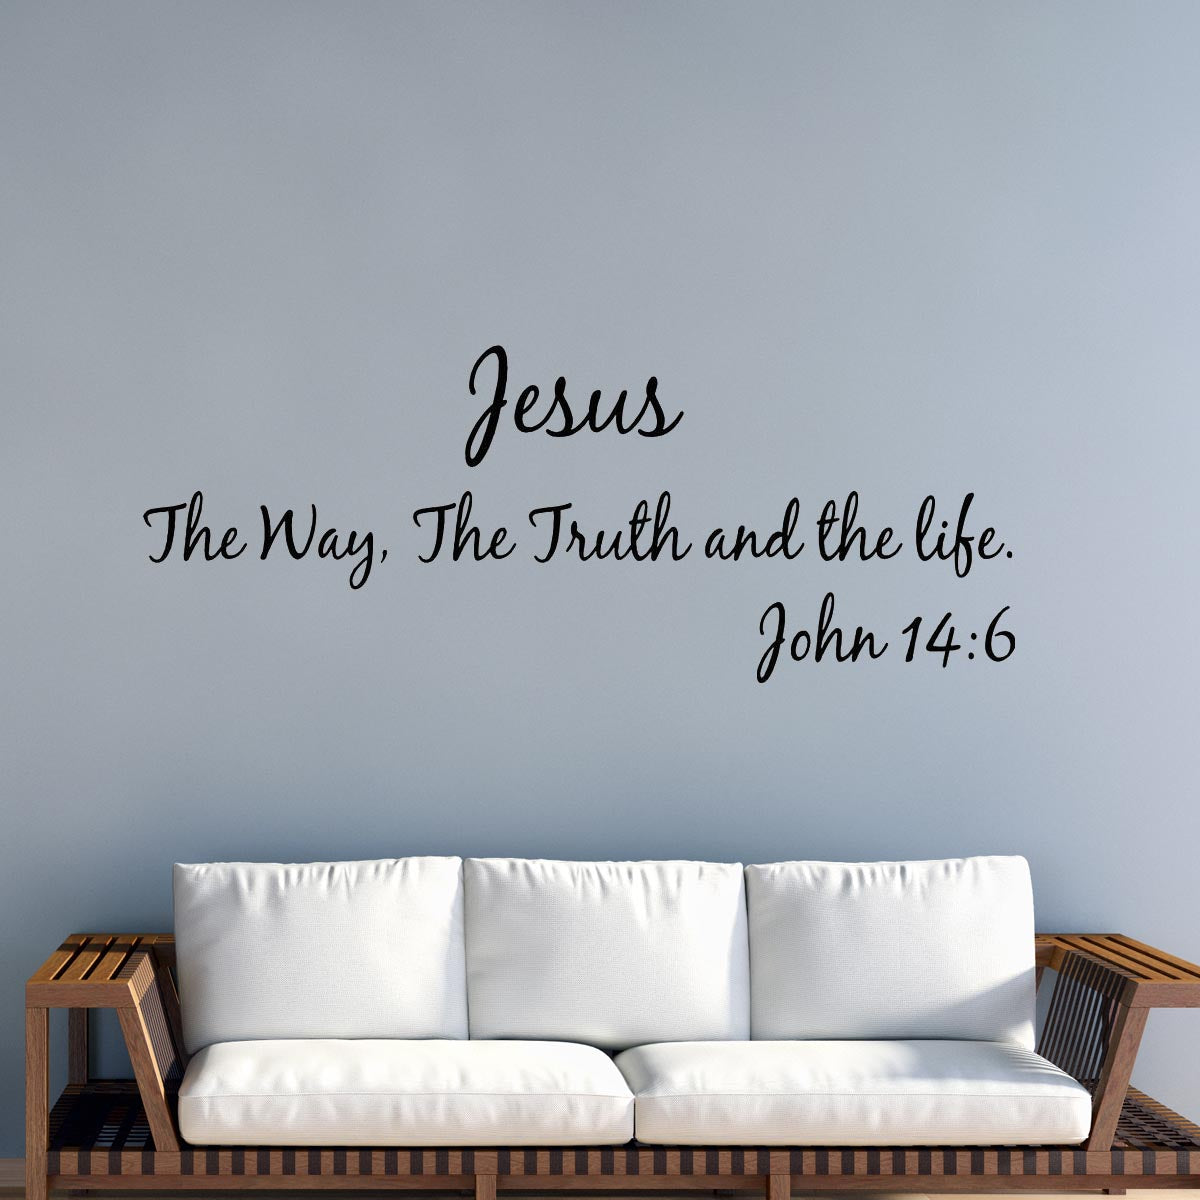 VWAQ Jesus The Way, The Truth And The Life - John 14 6 Vinyl Decal Bible Verses For Wall - VWAQ Vinyl Wall Art Quotes and Prints